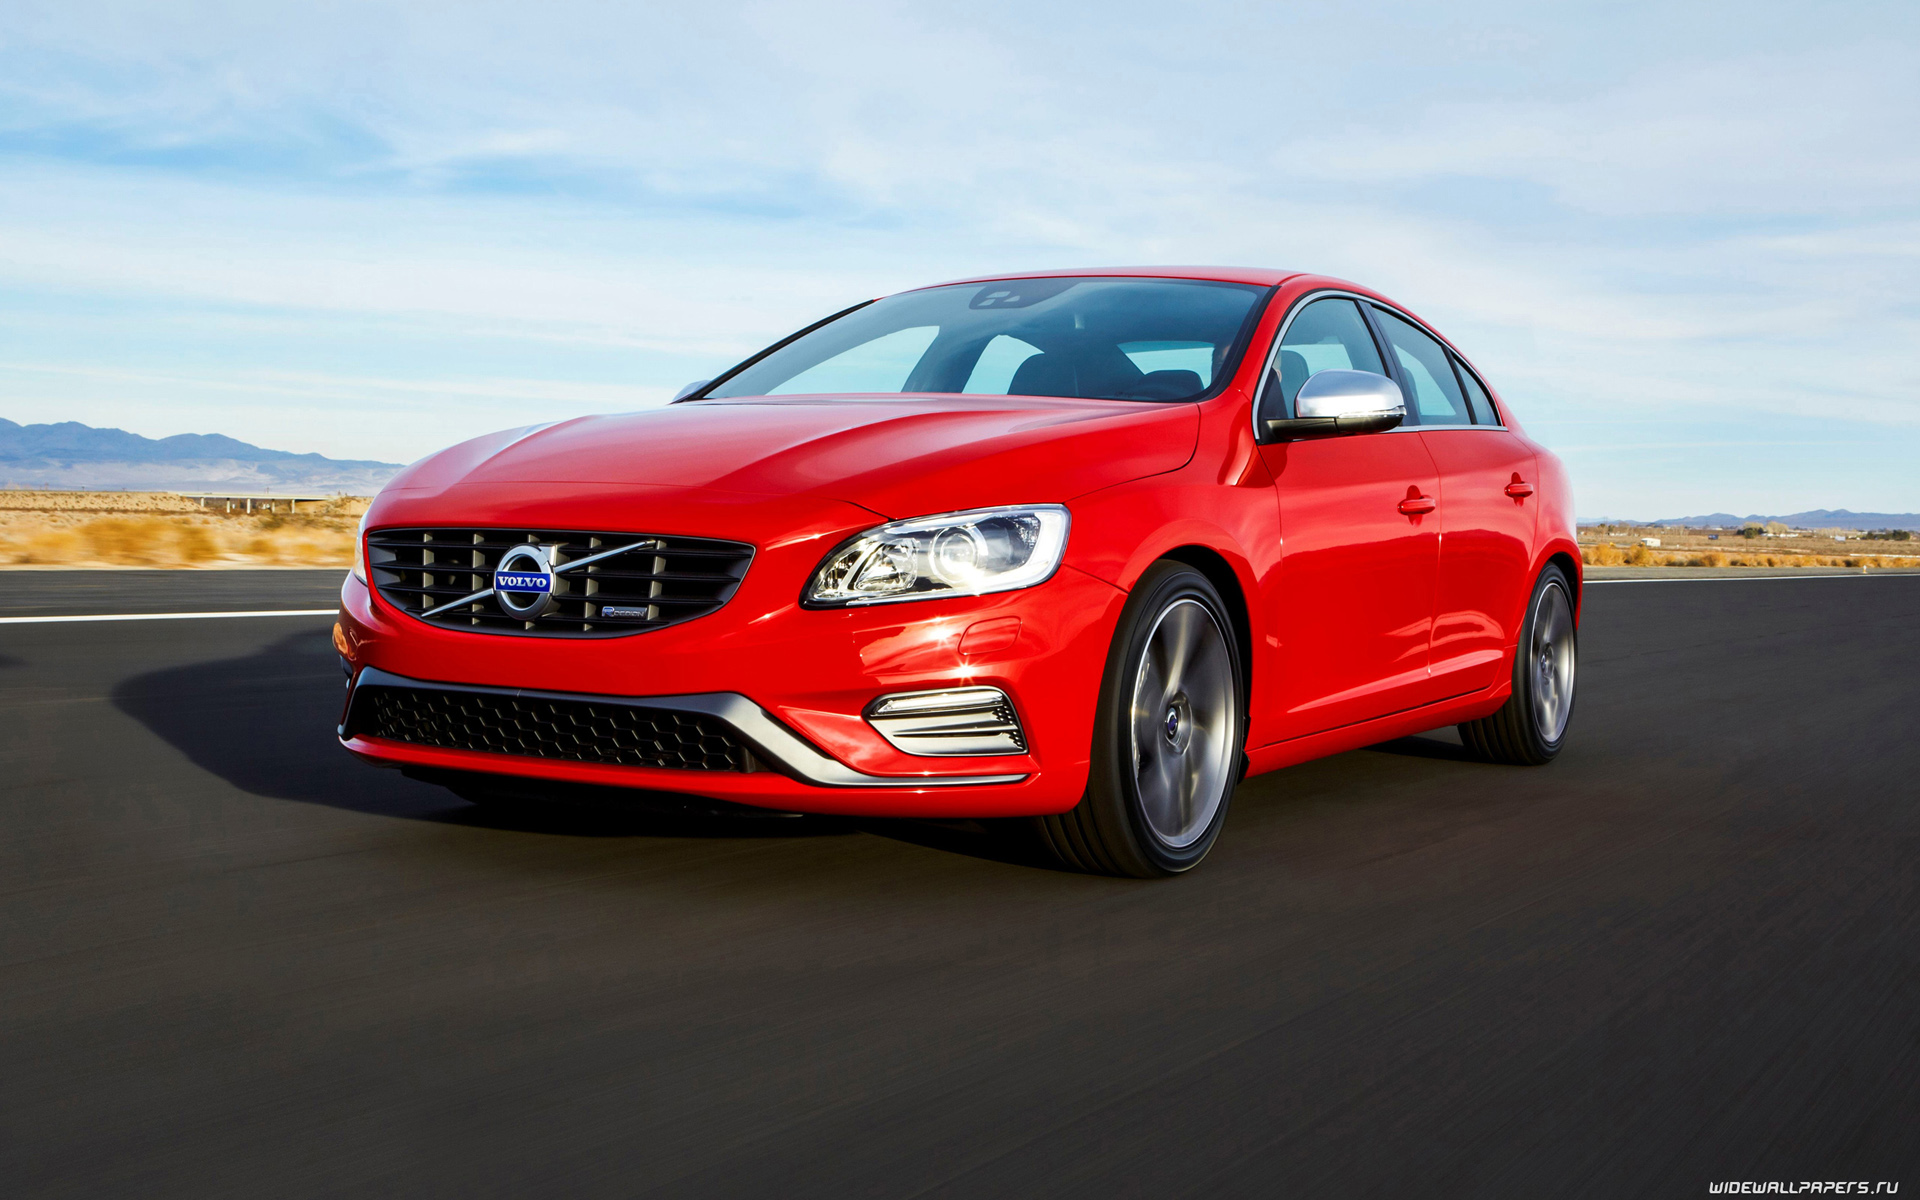 volvo Search volvo locations to visit our sales, service or parts center to view new and pre-owned luxury sedans, wagons, crossovers, suvs for local offers.